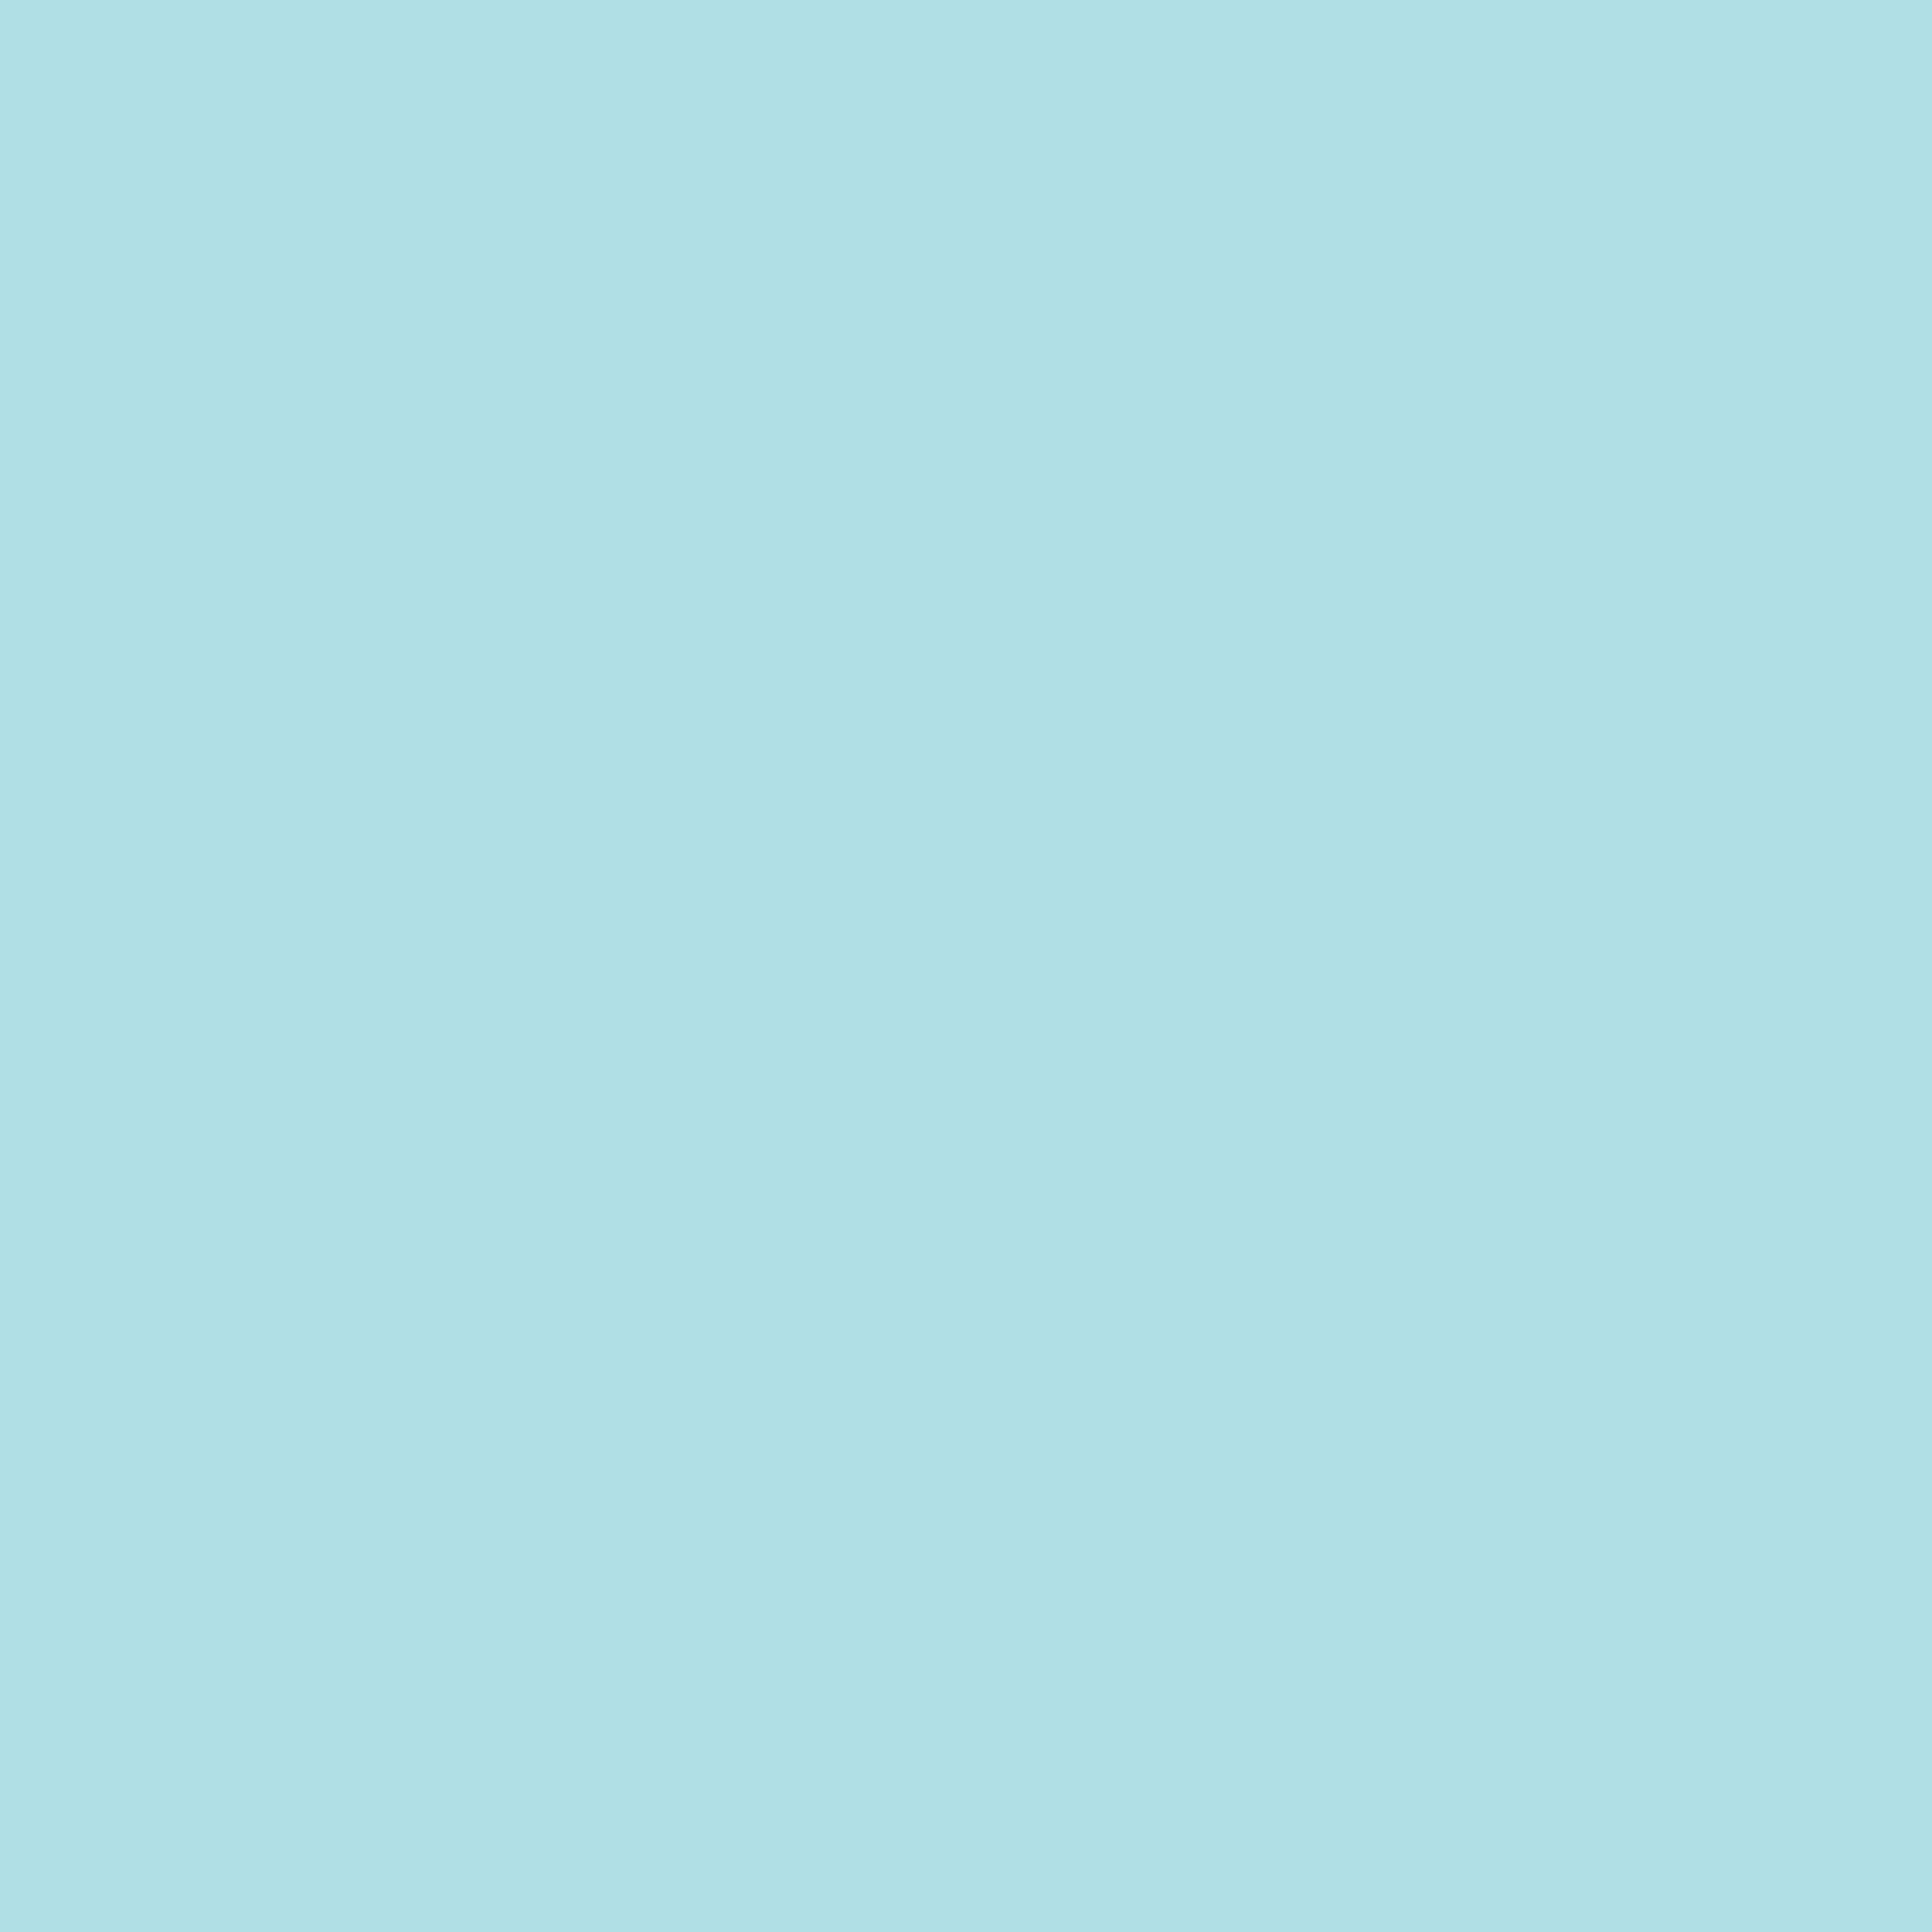 2048x2048 resolution Powder Blue Web solid color background view 2048x2048